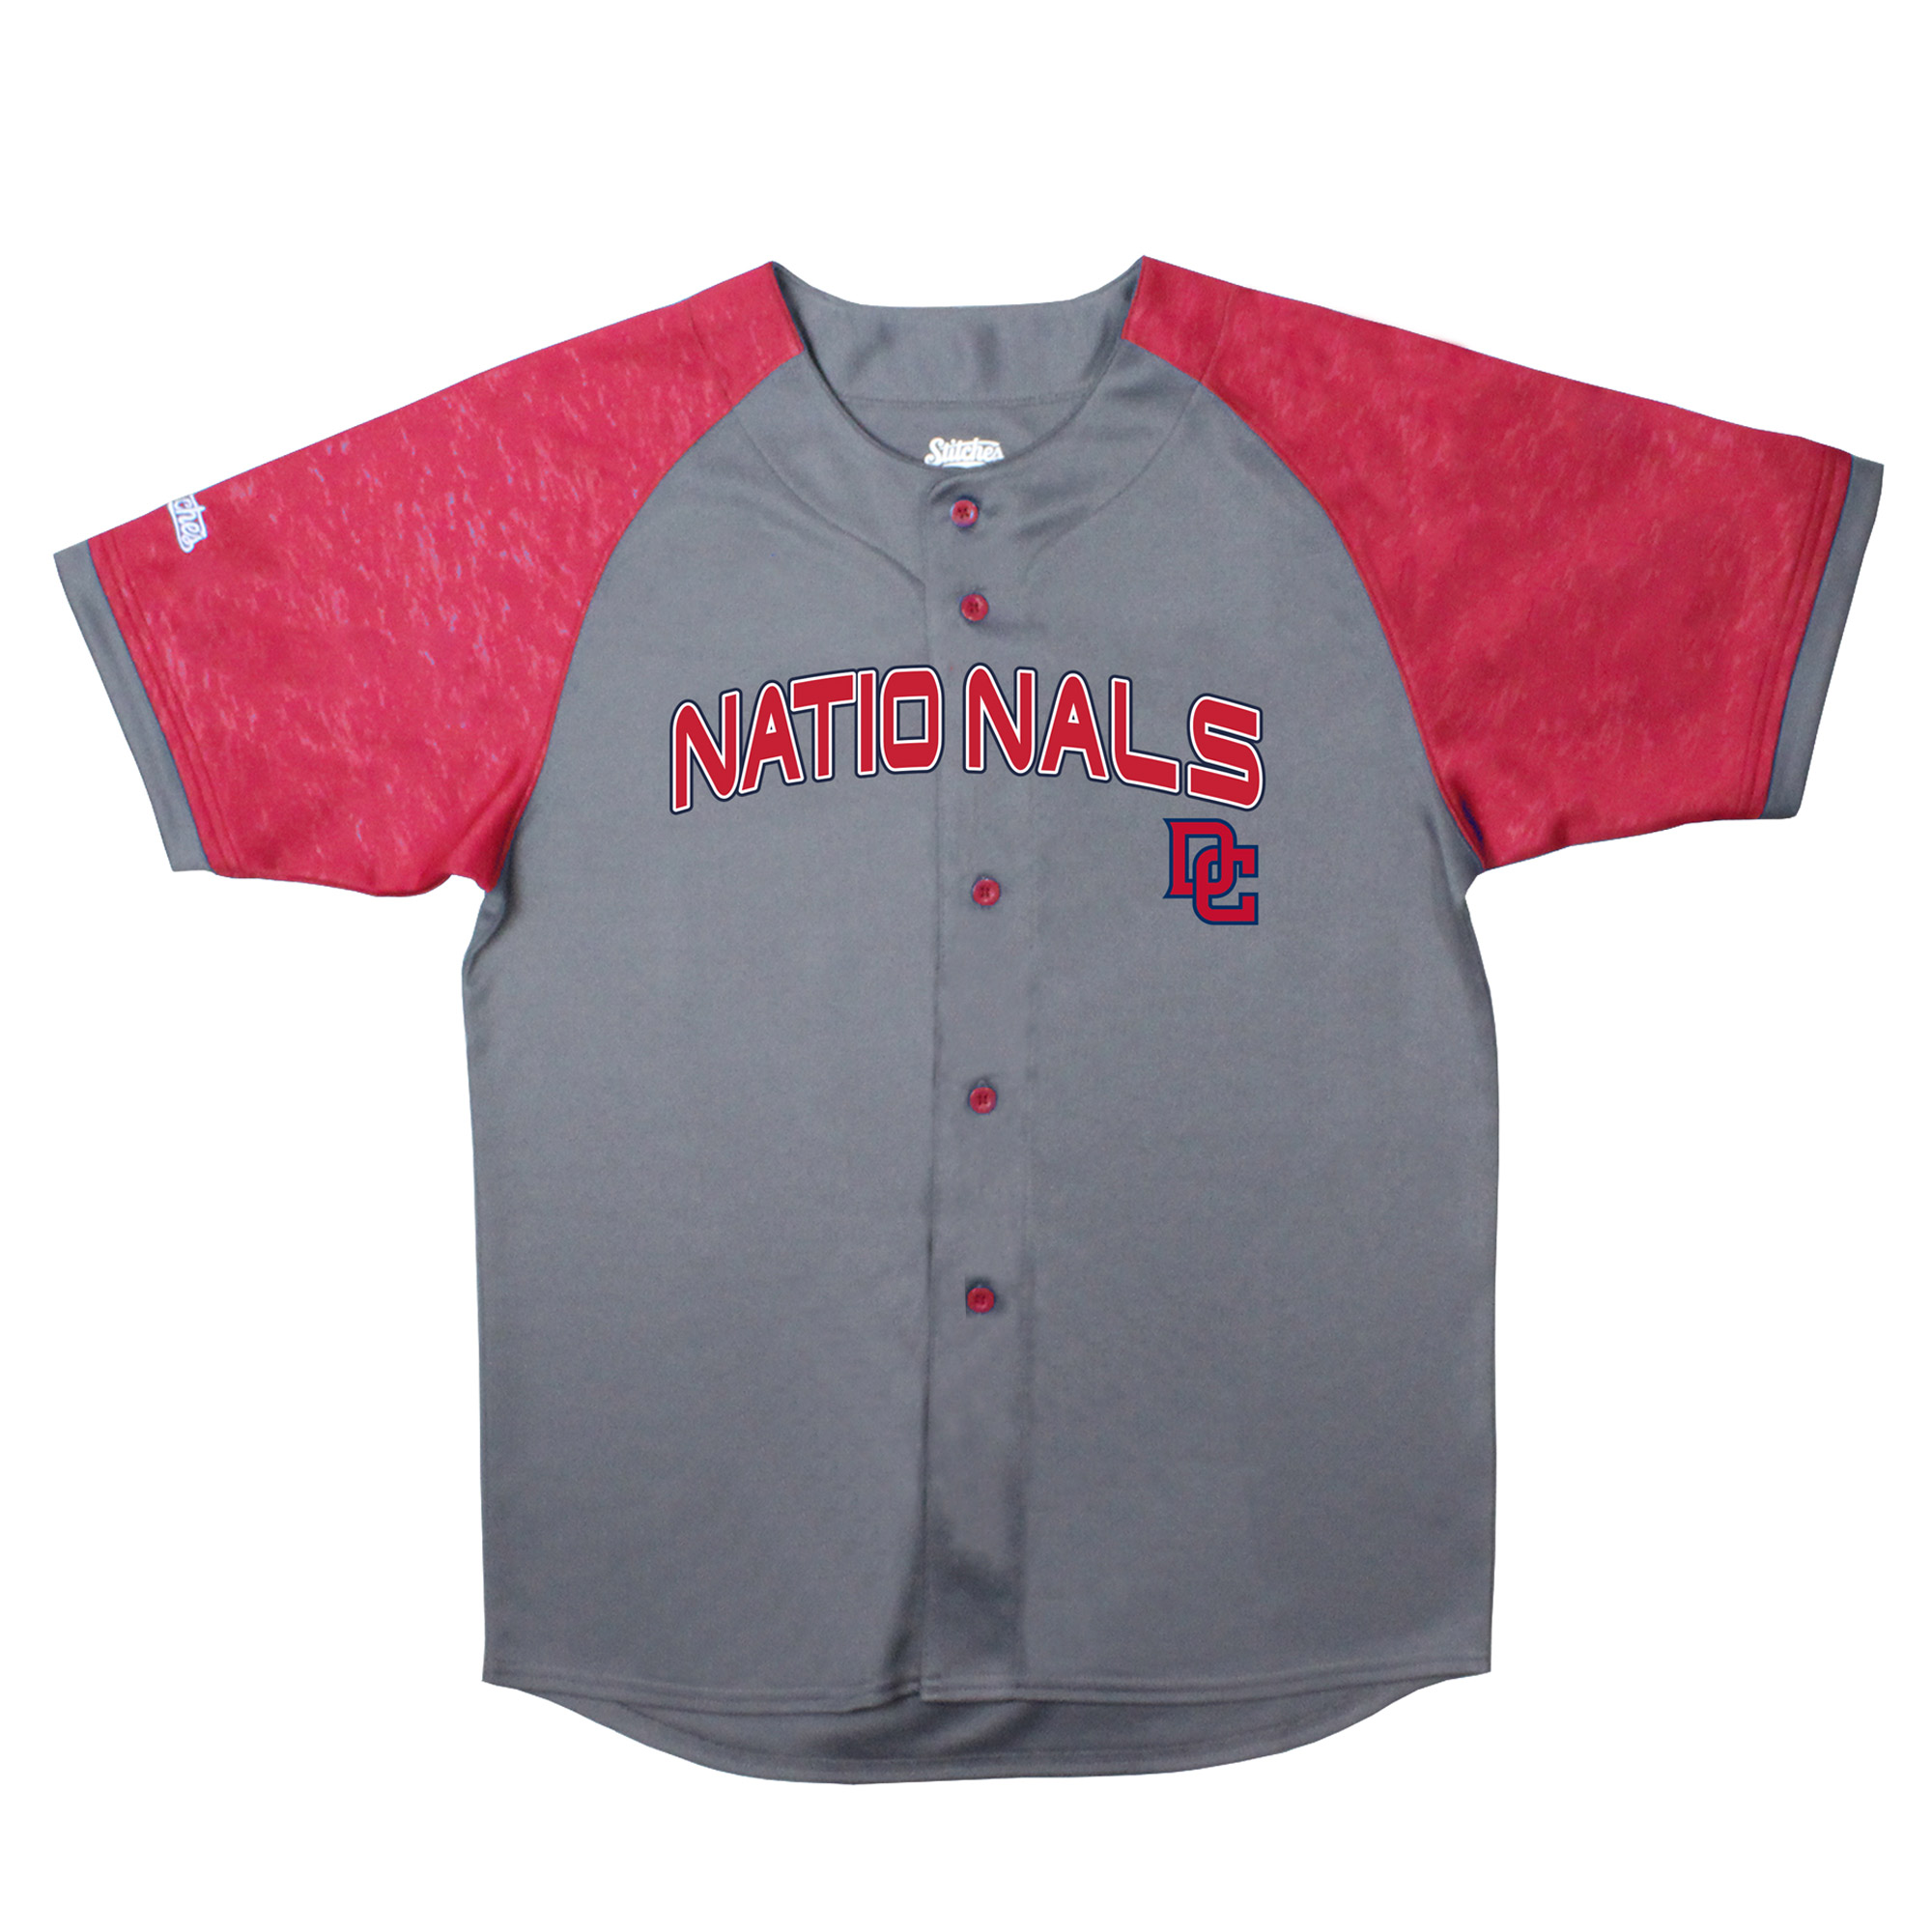 Washington Nationals Stitches Youth Glitch Jersey - Charcoal/Red